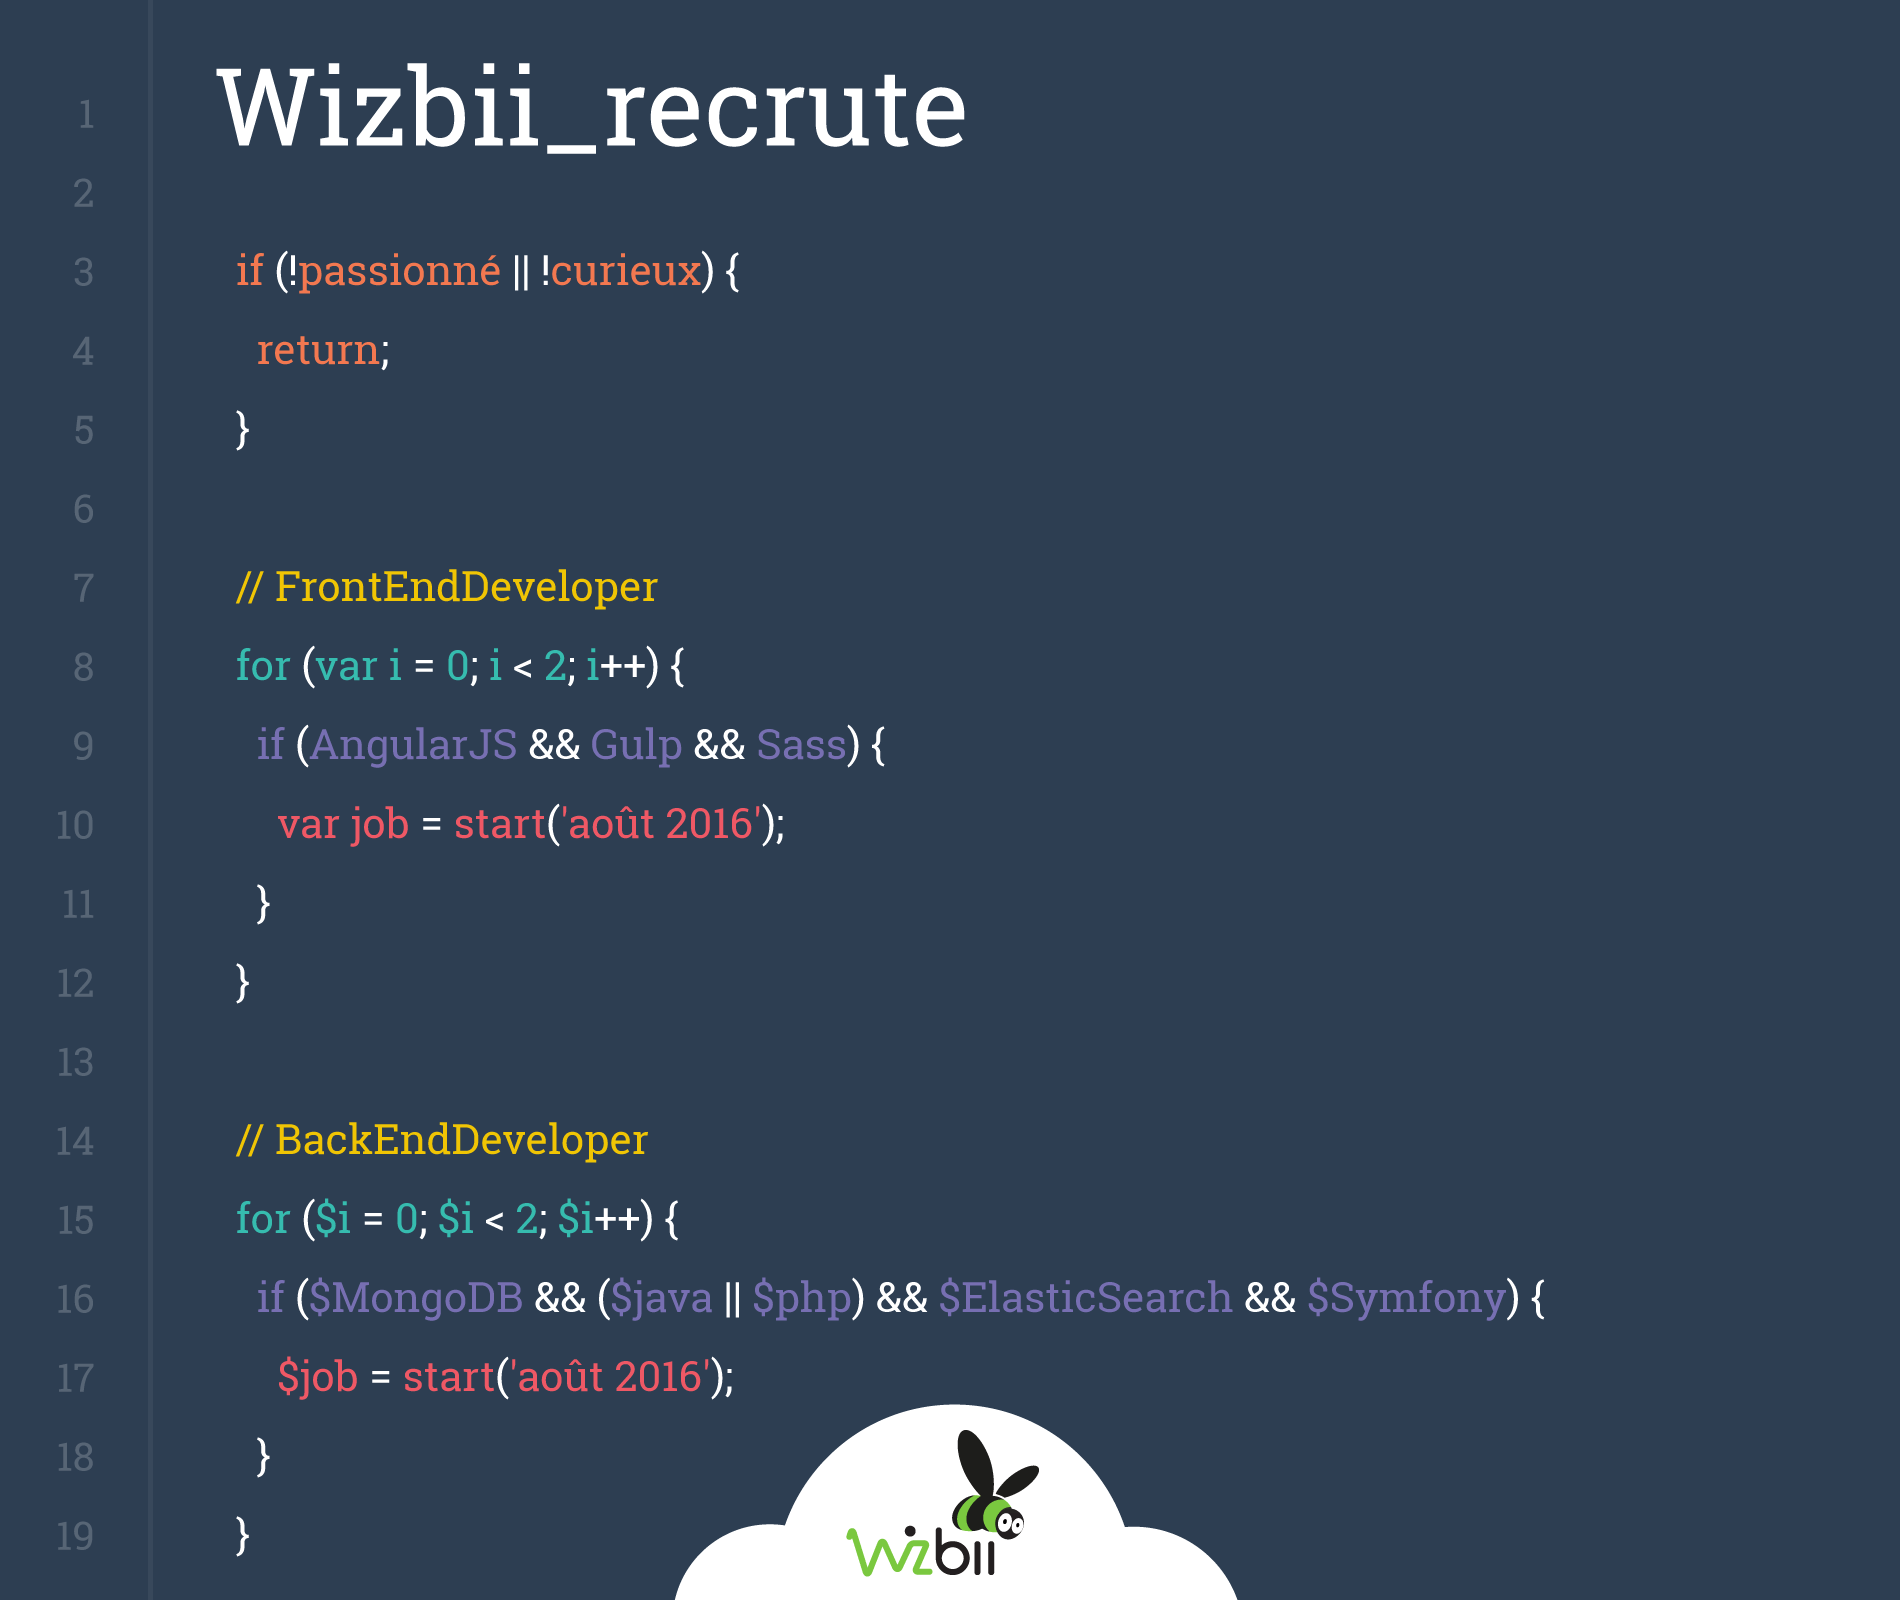 recrutement wizbii back end front end developer